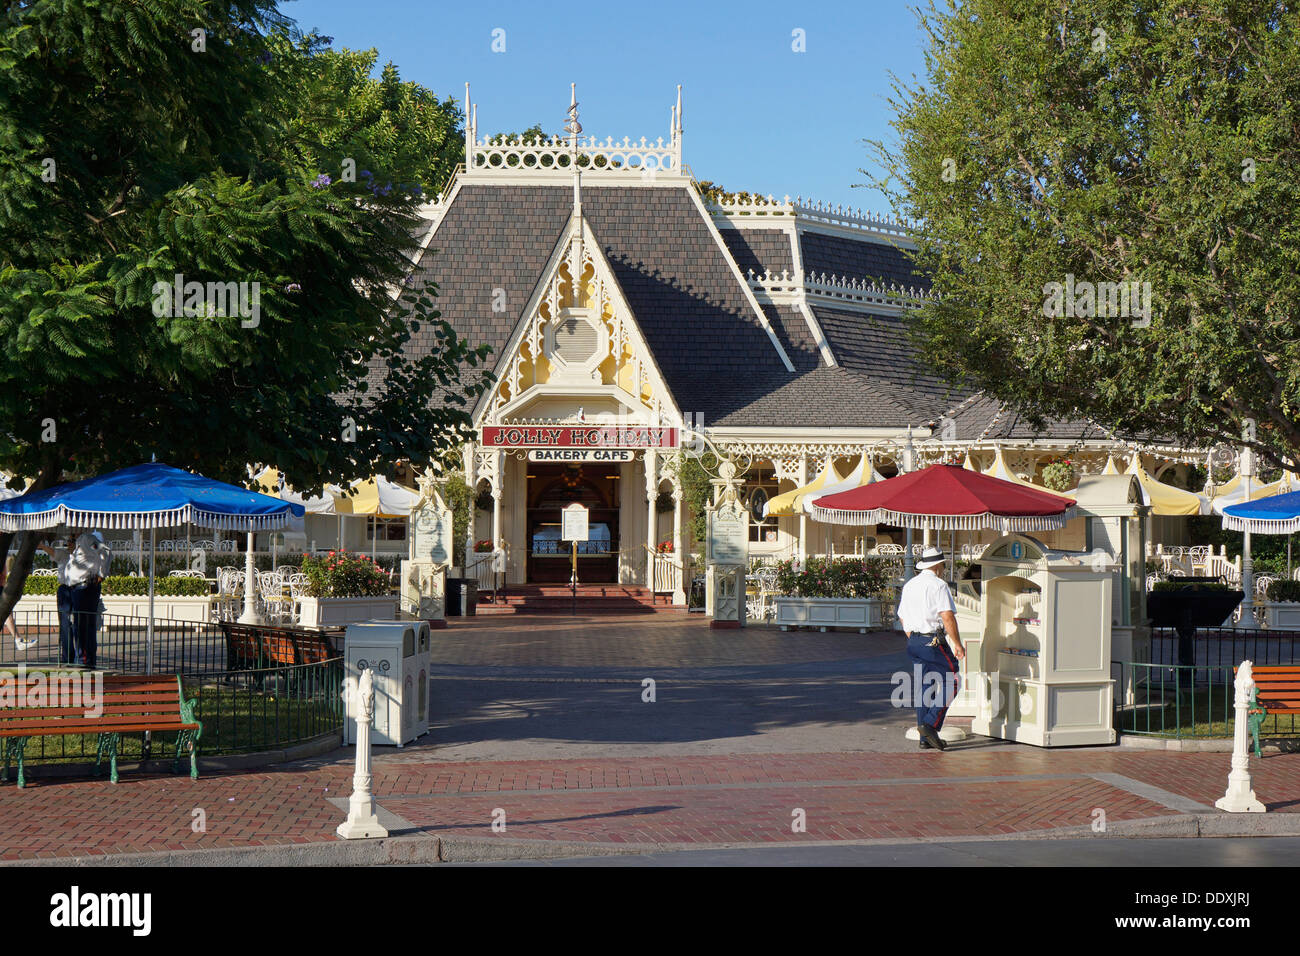 Disneyland, Jolly Holiday, Bakery Cafe on Main Street, Anaheim, California - Stock Image